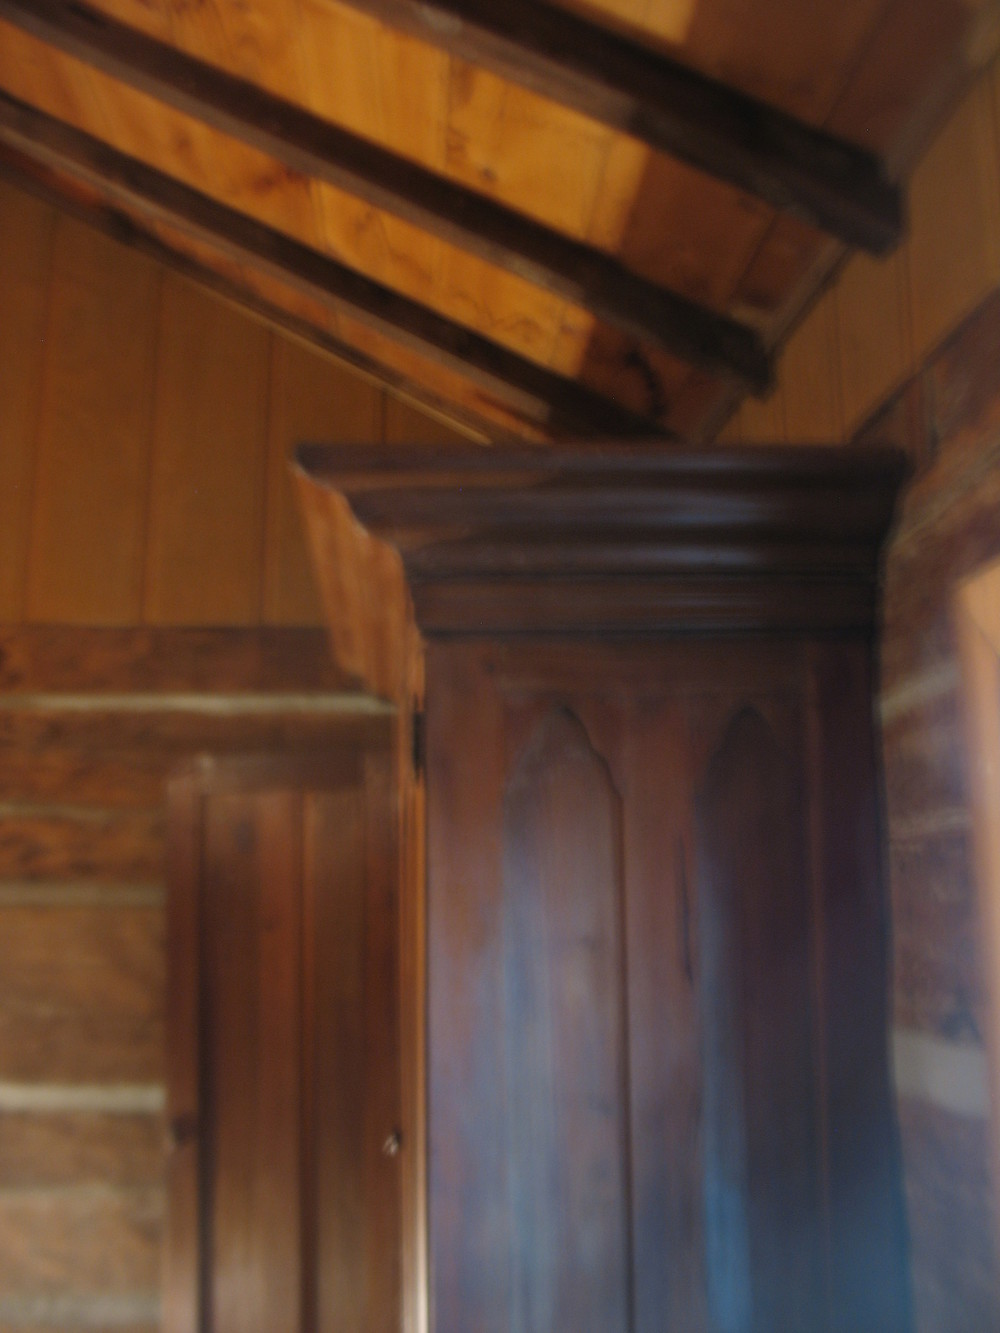 This is a side view of the wardrobe and shows the beauty and the depth of the crown molding